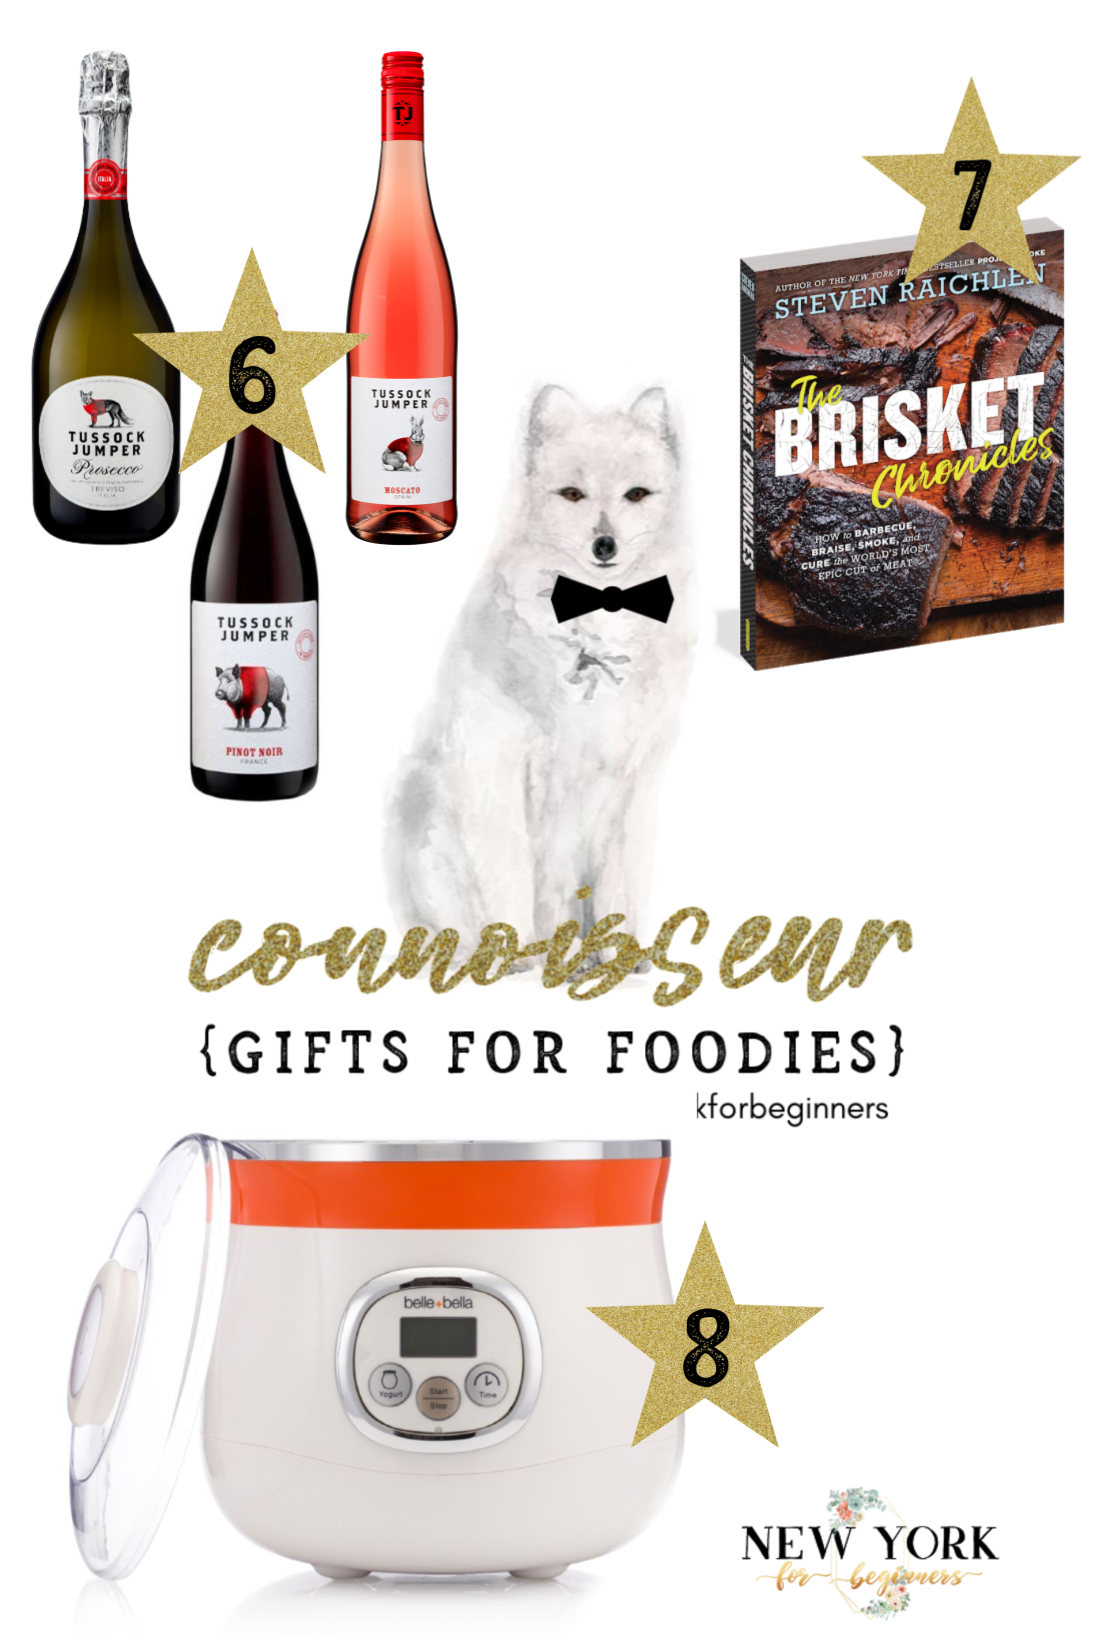 The best holiday gifts for foodies and connoisseurs